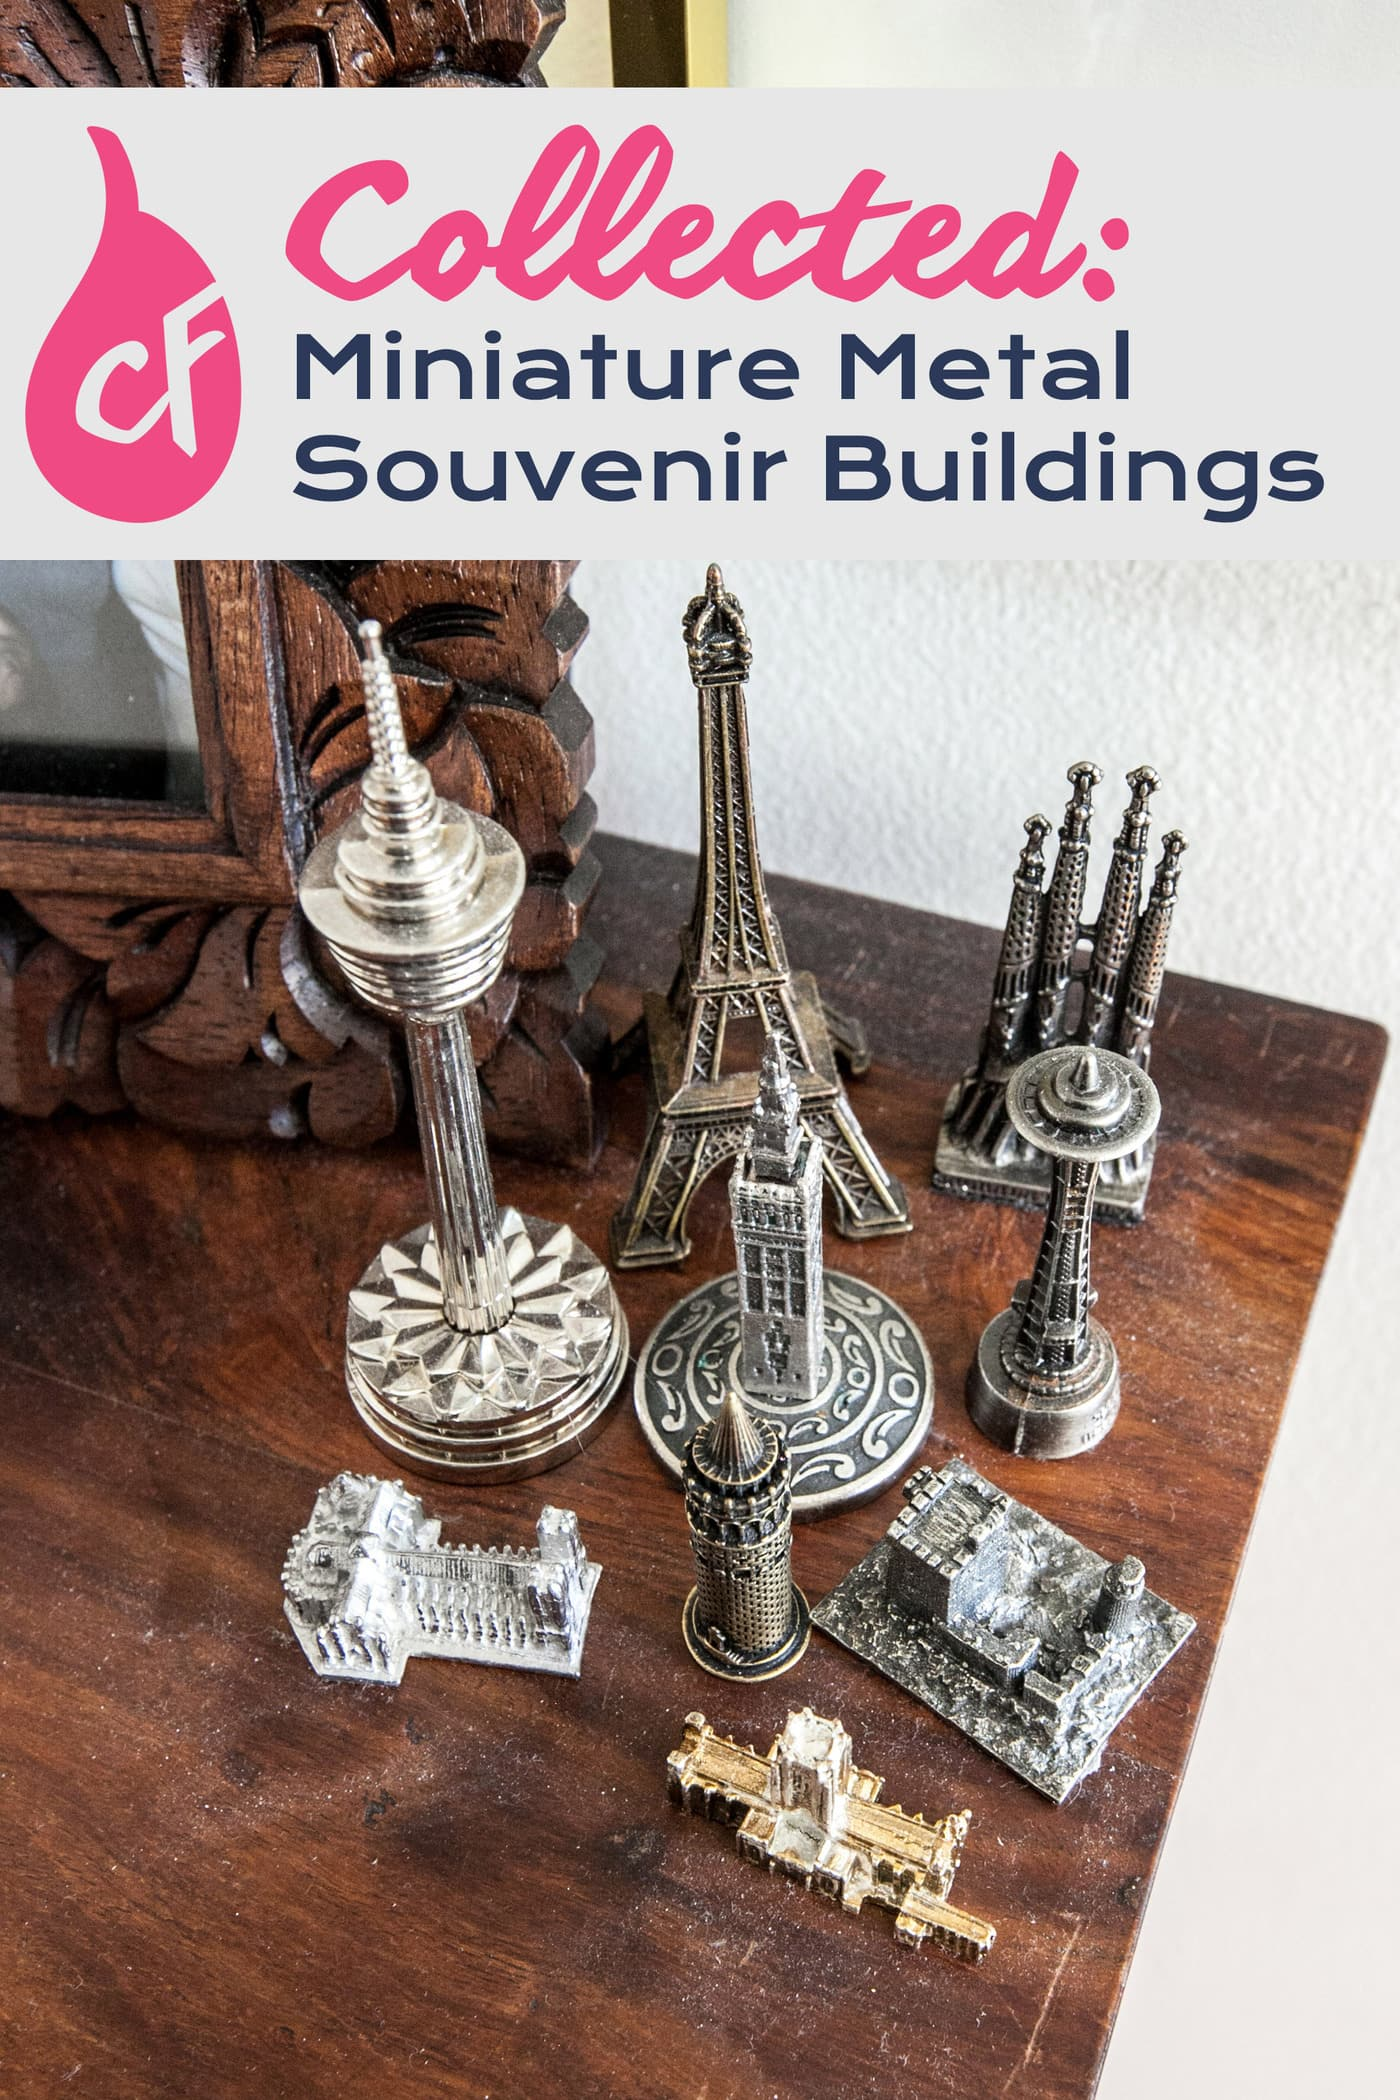 Collecting miniature metal souvenir buildings from around the world.